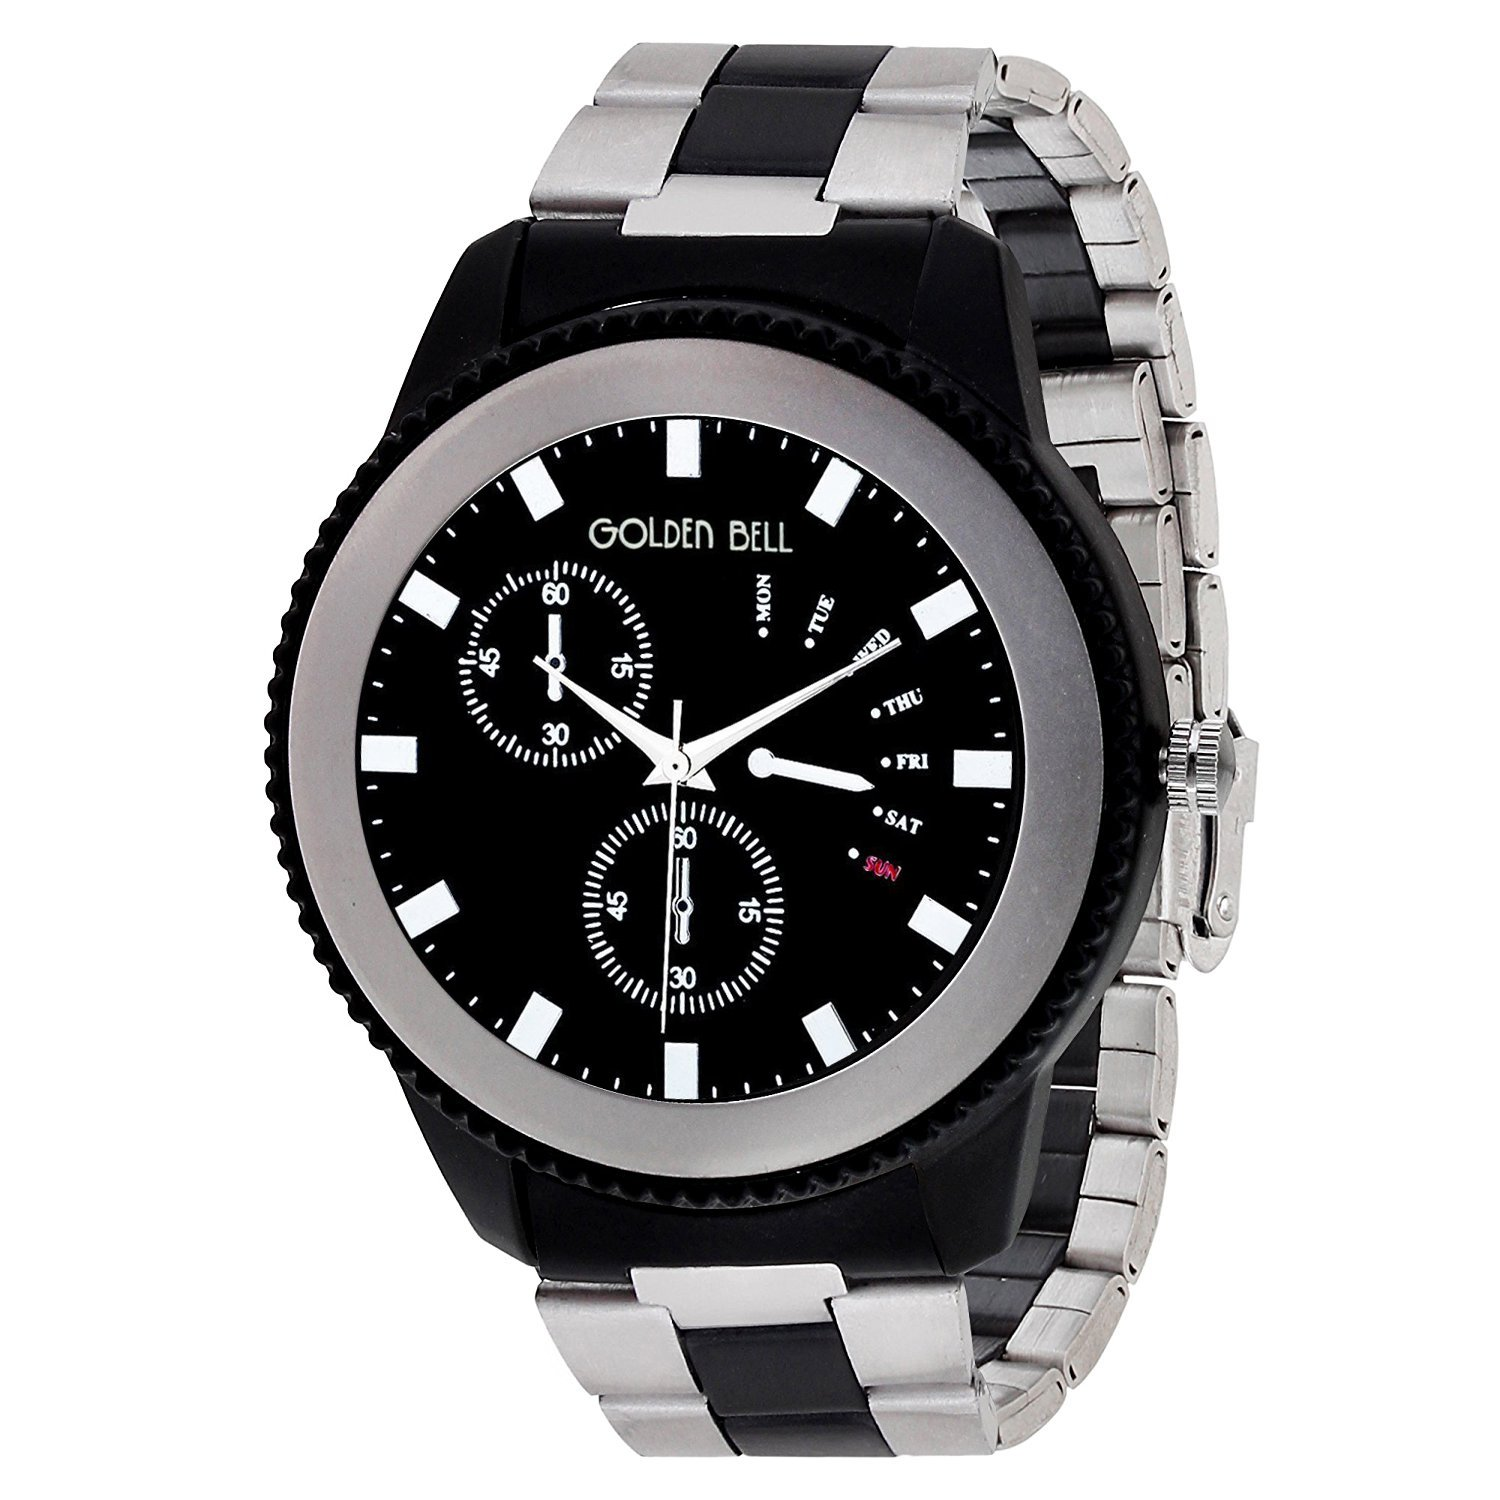 5553660e3730 Buy Golden Bell Original Black Dial Silver Two Tone Designer Steel Chain  Analog Wrist Watch for Men - GB-983 Online at Low Prices in India -  Amazon.in